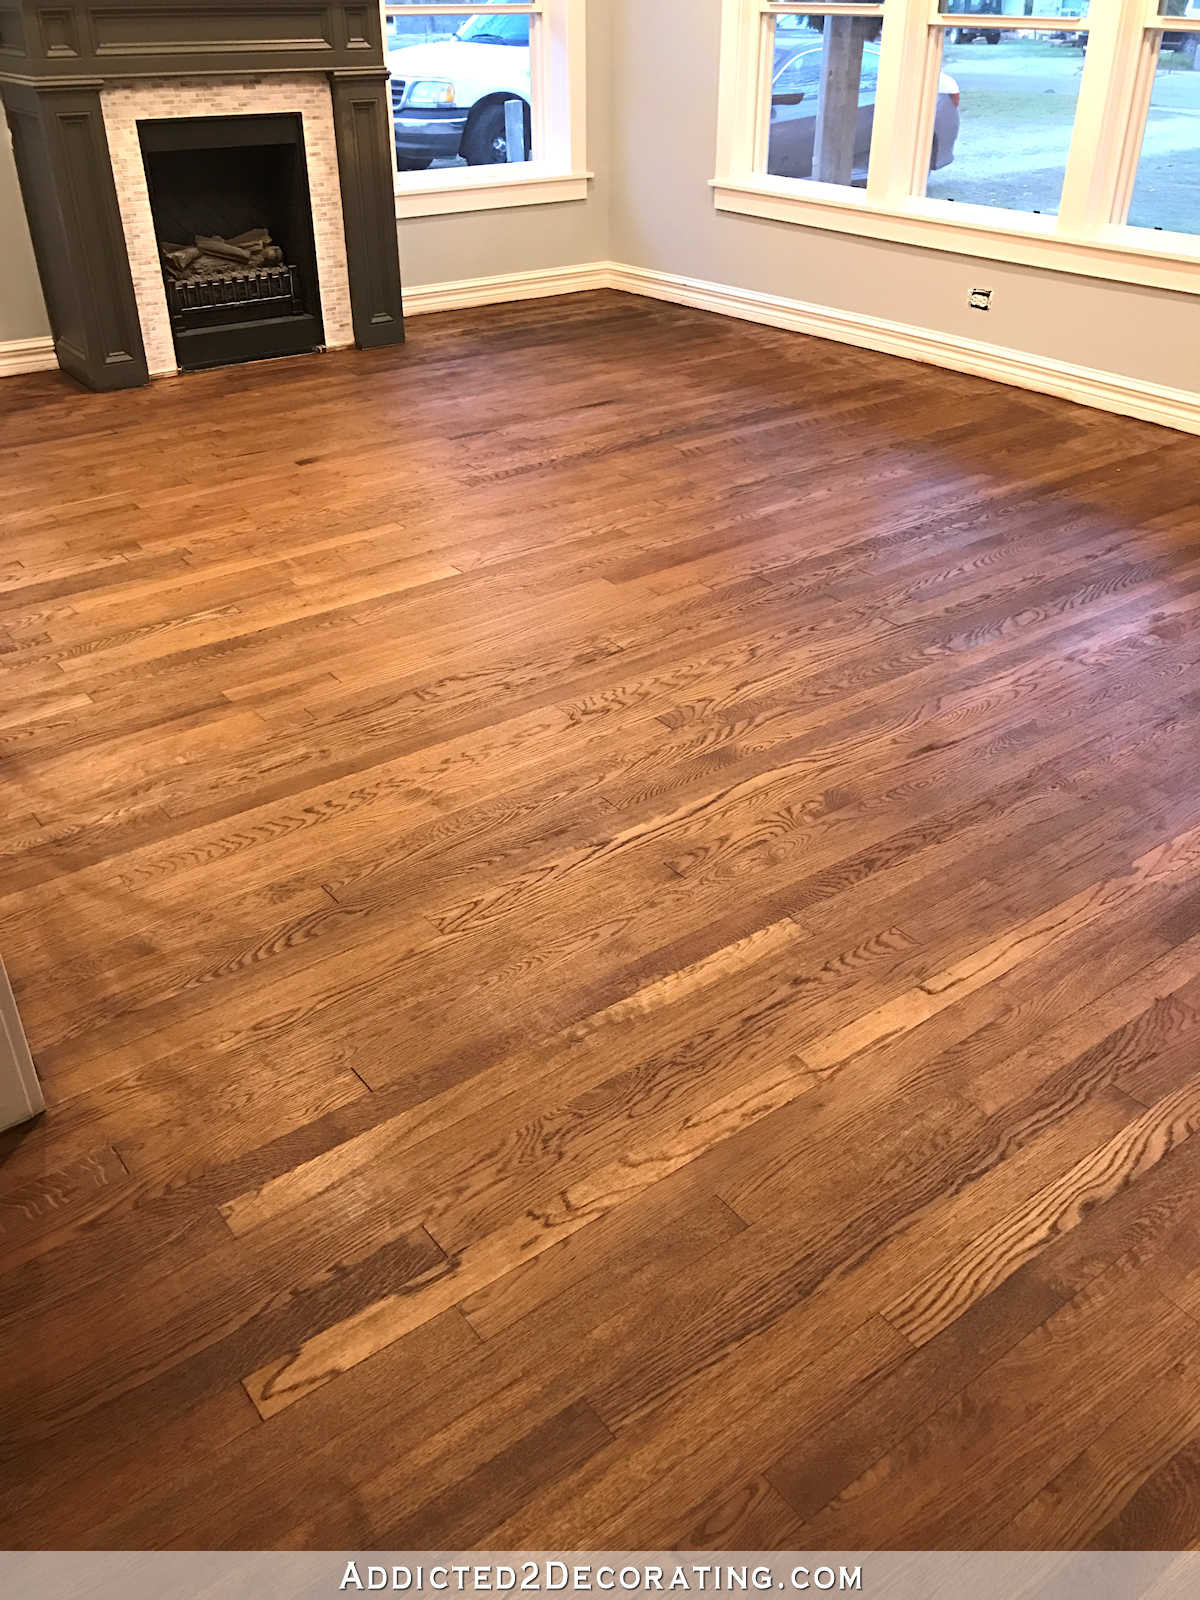 different types of hardwood floors of adventures in staining my red oak hardwood floors products process regarding staining red oak hardwood floors 8a living room and entryway